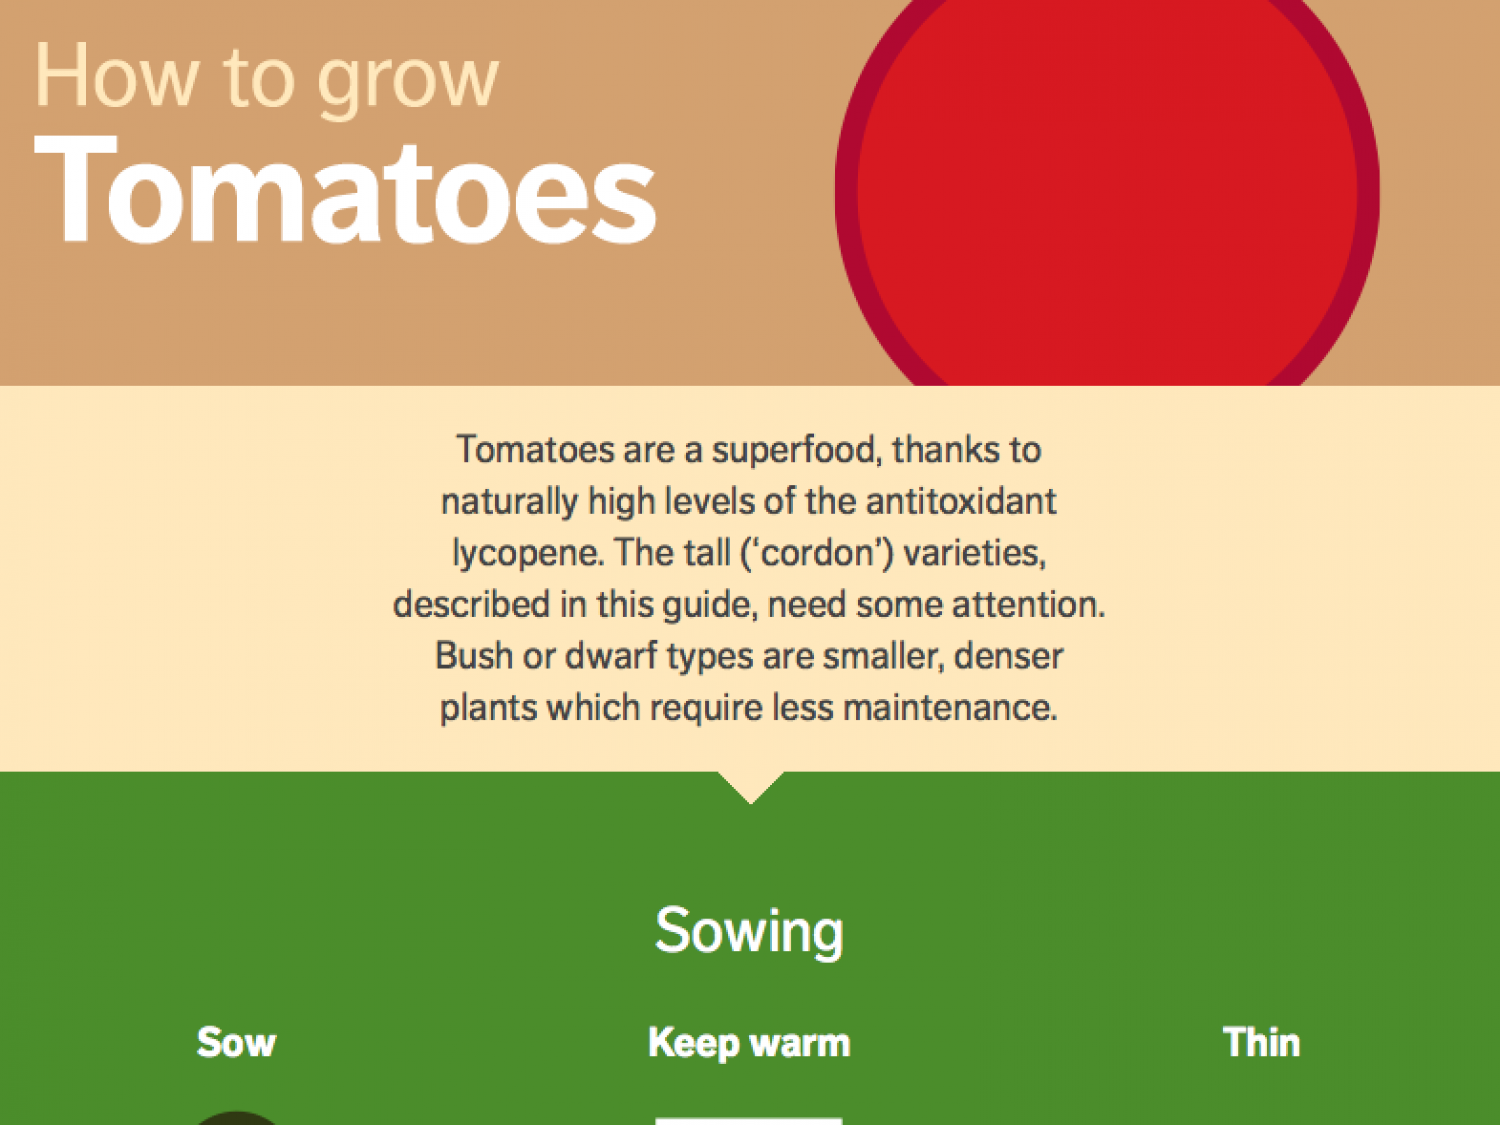 How to Grow Tomatoes Infographic